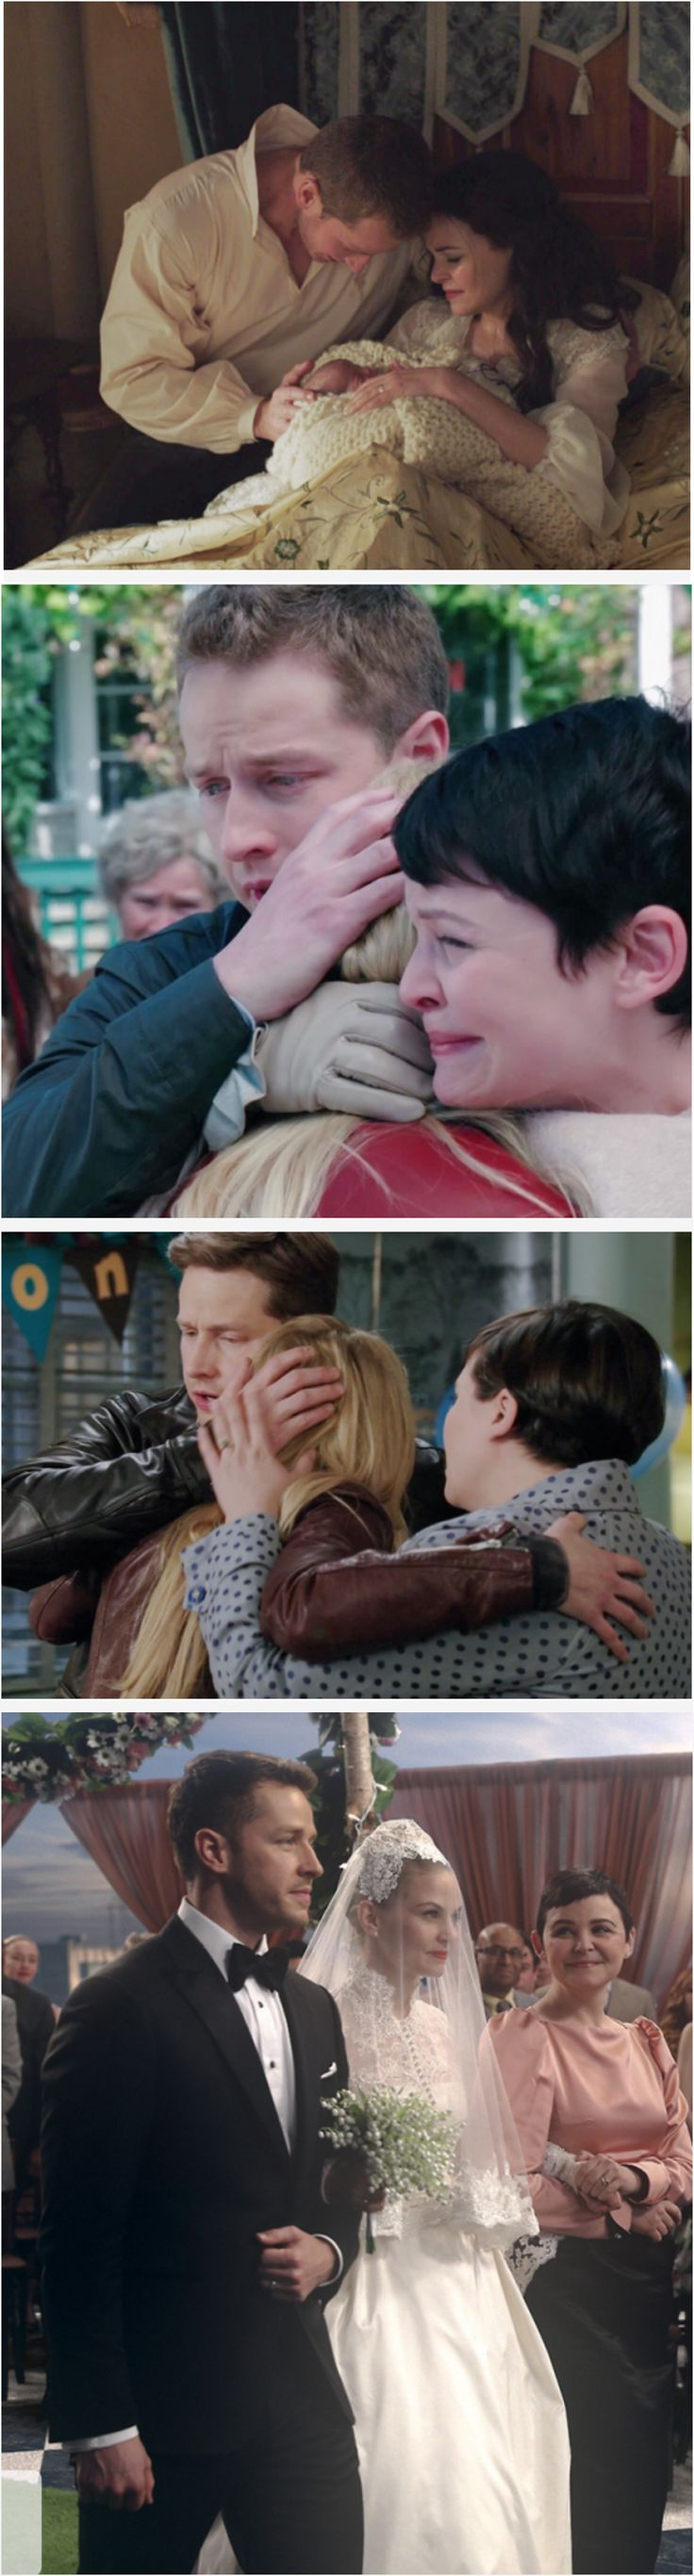 From being forced to give her up when she was a baby, to seeing and reuniting with their baby girl for the first time in 28 years, to the first time Emma realized that Charming and Snow were her parents and that they're home, to now them together as a family walking down the aisle ready to give their daughter away to her true love. What a beautiful family!